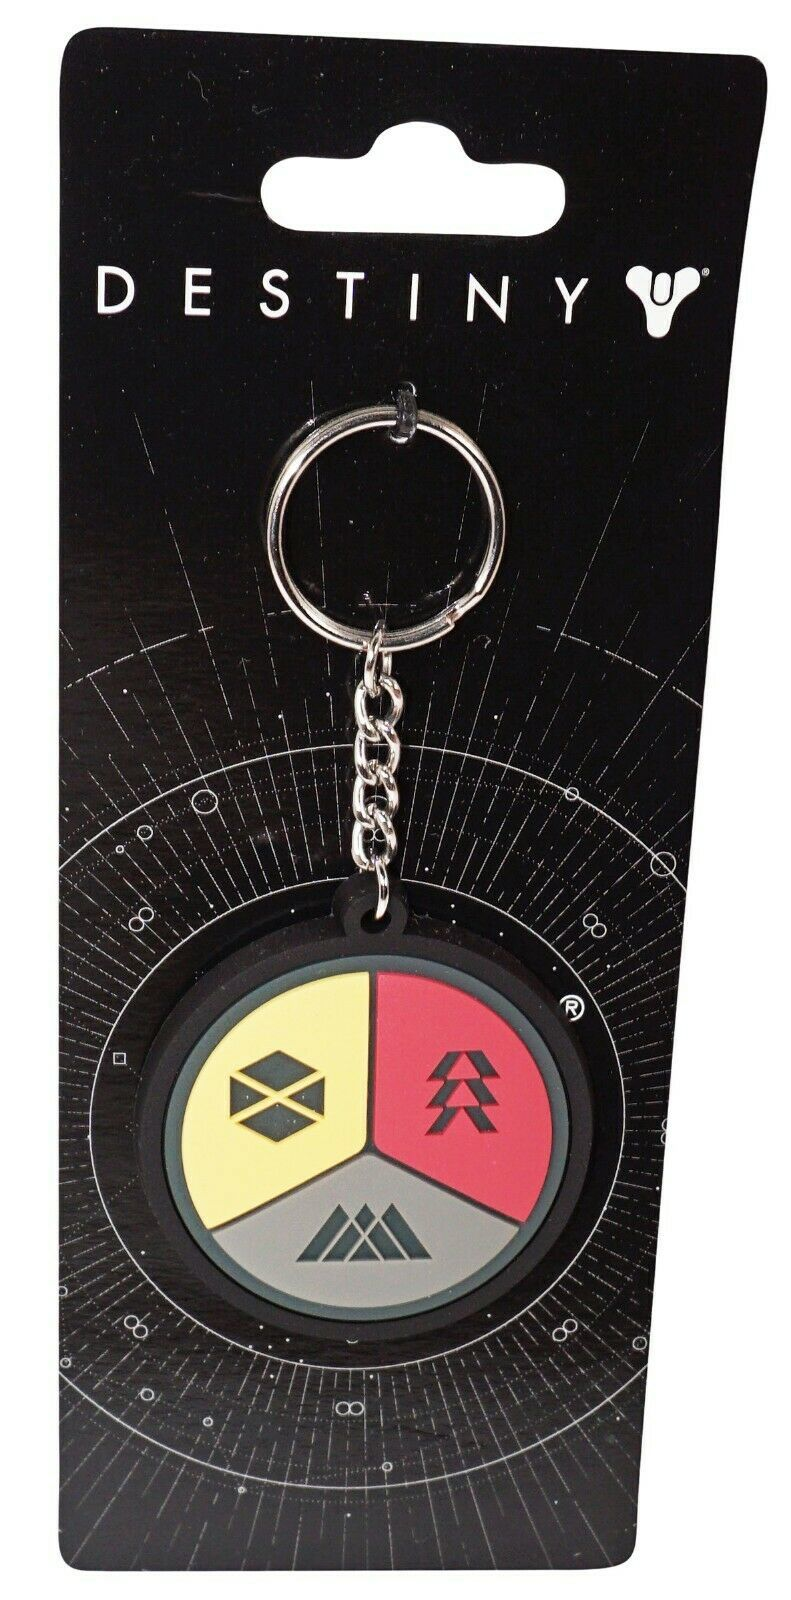 Primary image for DESTINY 2 GUARDIANS - BADGE GAMER FAN KEYCHAIN NEW 2017 - STYLE #1